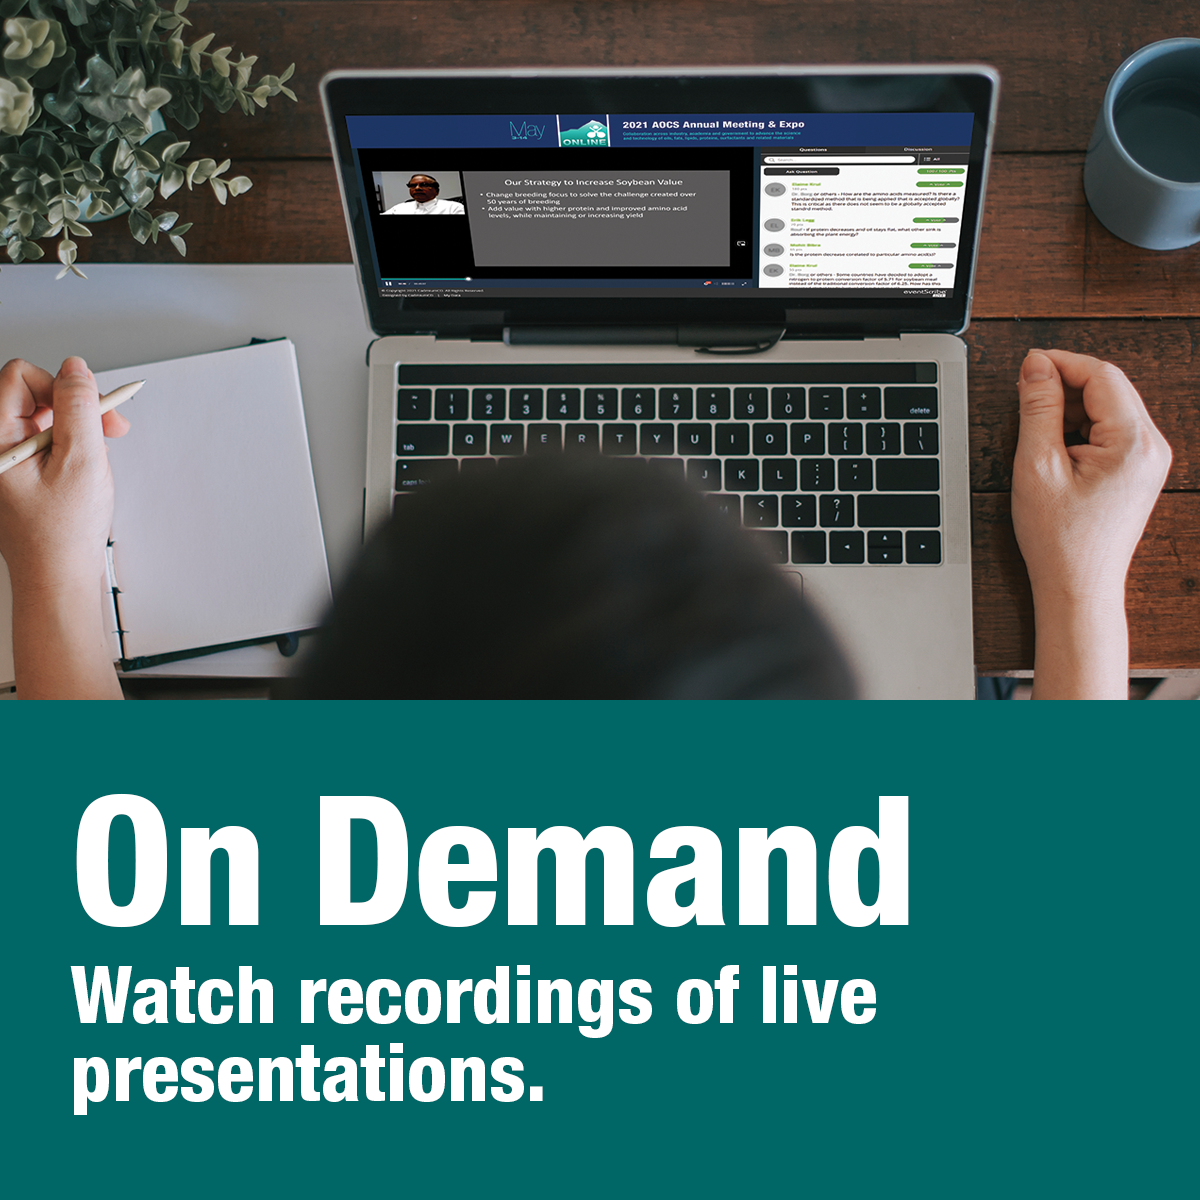 Browse on-demand recordings